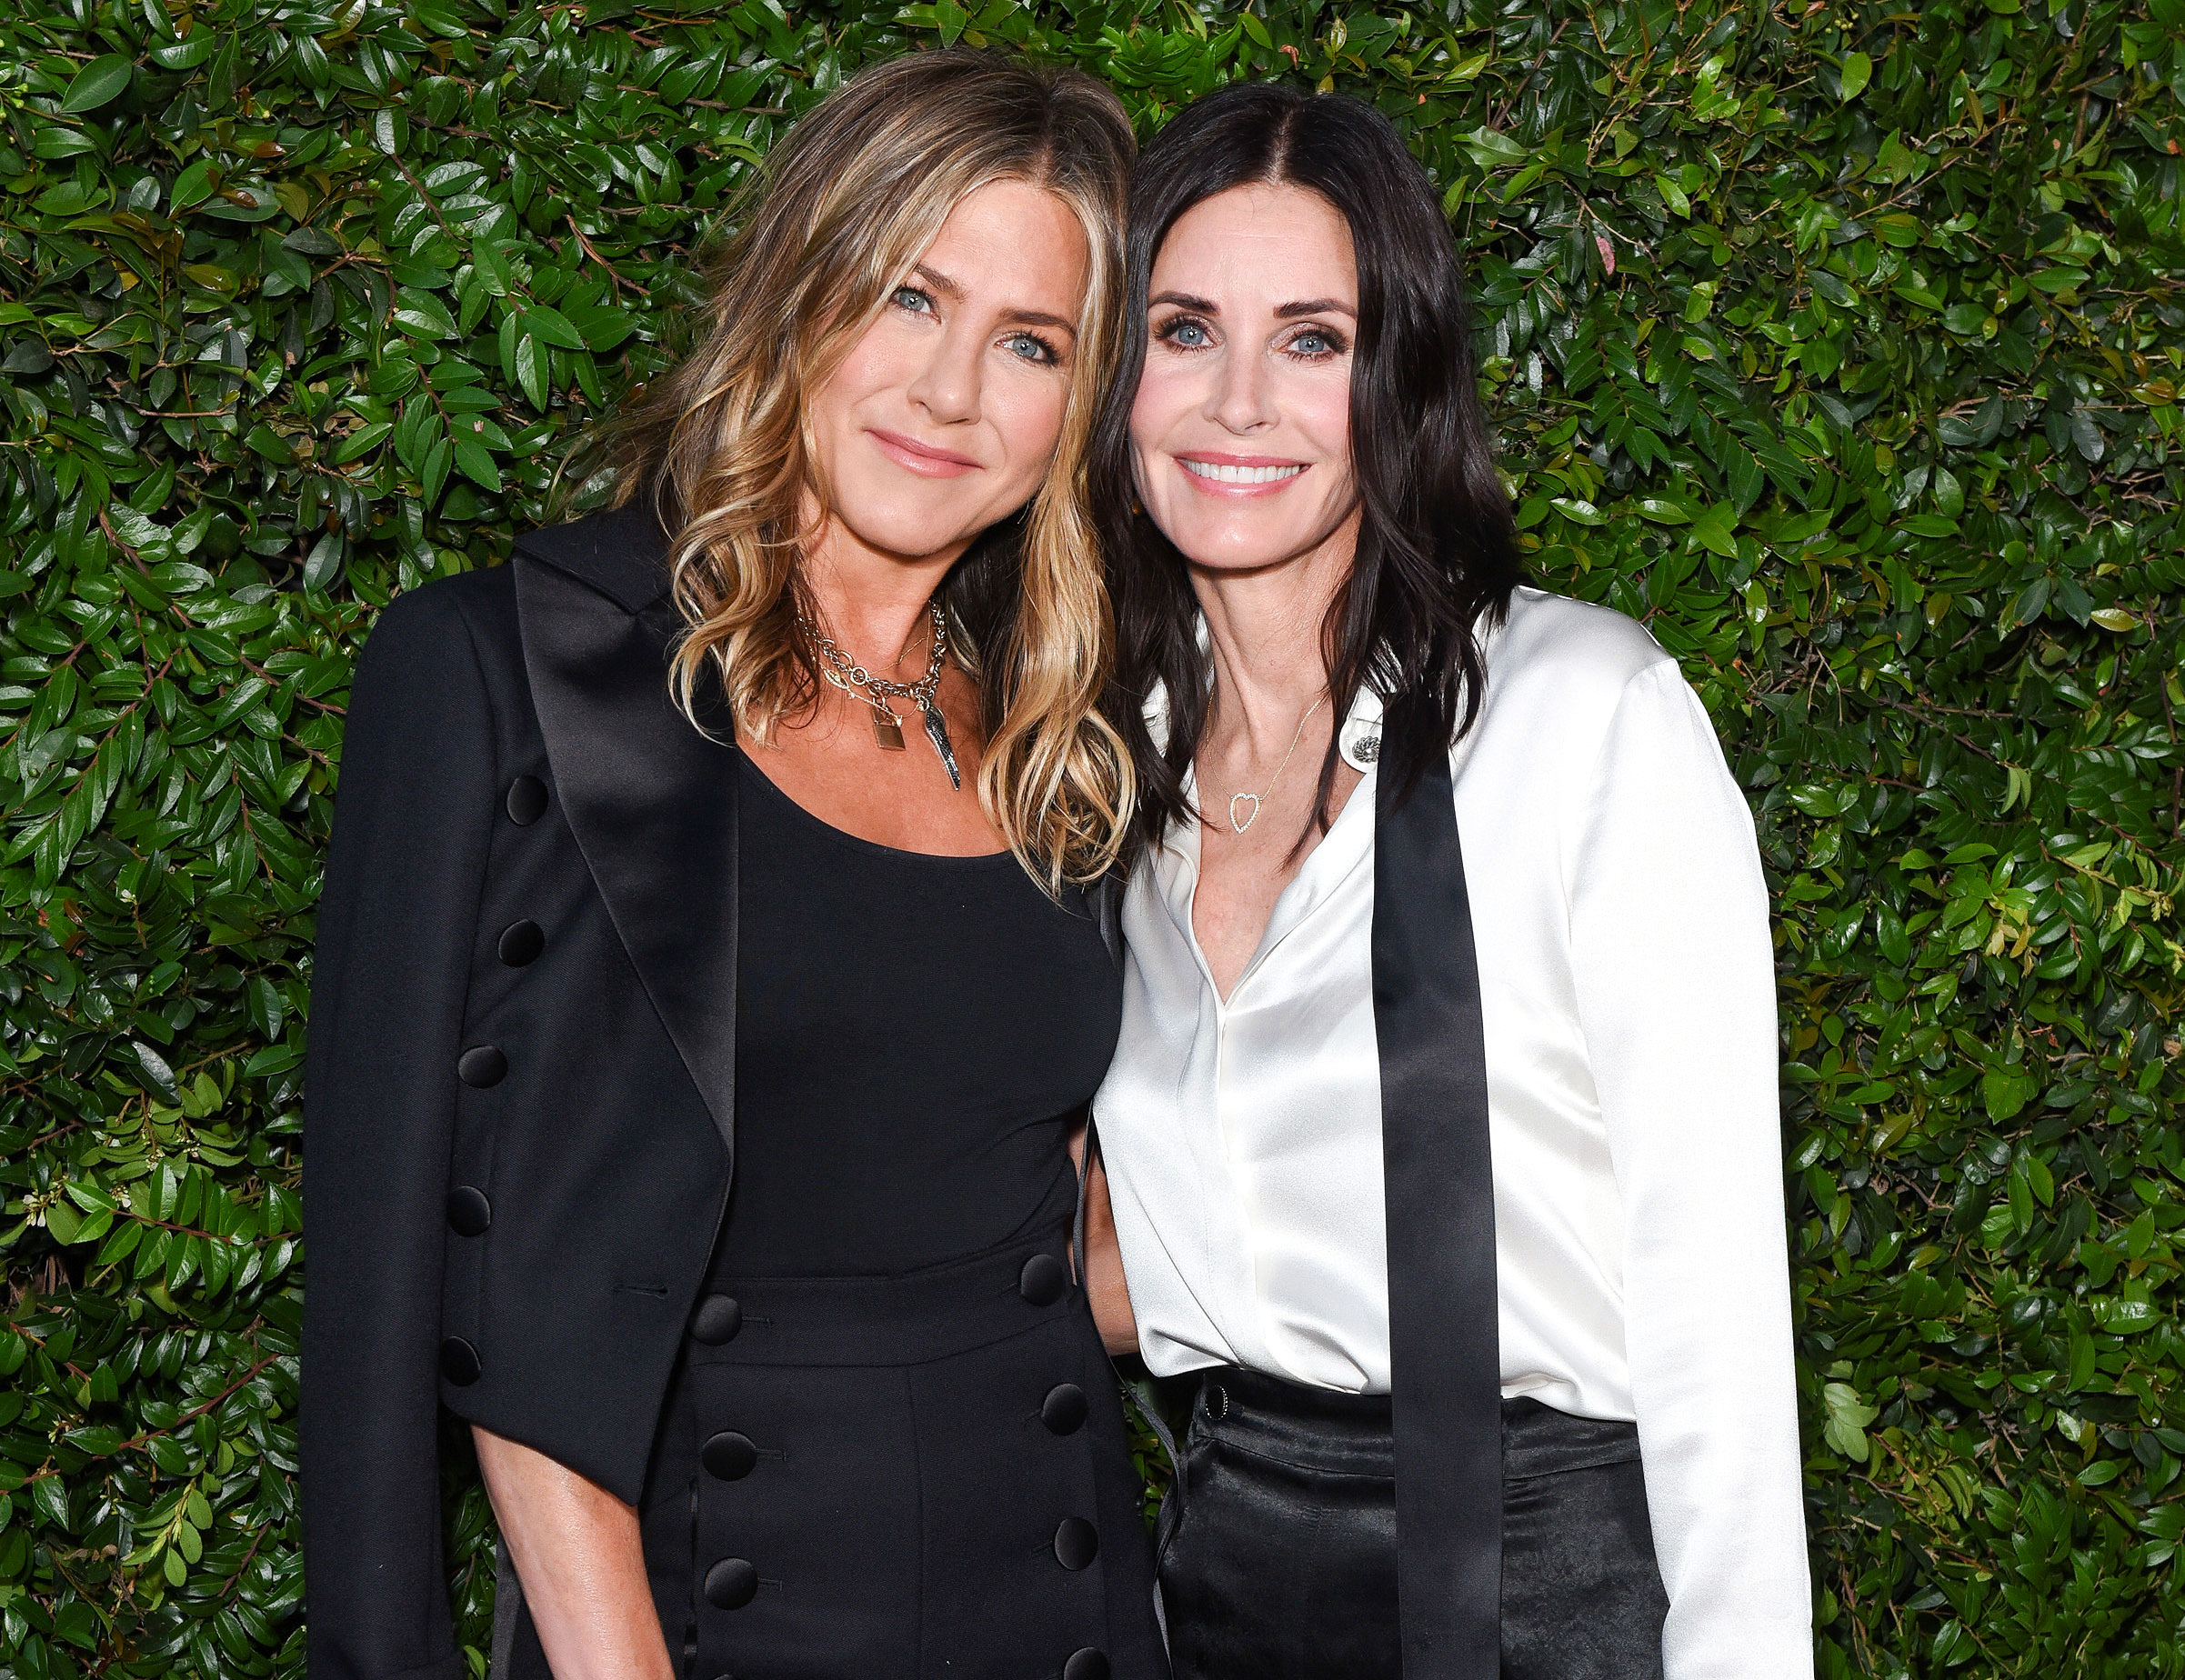 ennifer Aniston, Courteney Cox and Friends Arrive Safely in Cabo After Emergency Plane Landing - Jennifer Aniston and Courtney Cox attend CHANEL Dinner Celebrating Our Majestic Oceans, A Benefit For NRDC on June 2, 2018 in Malibu, California.